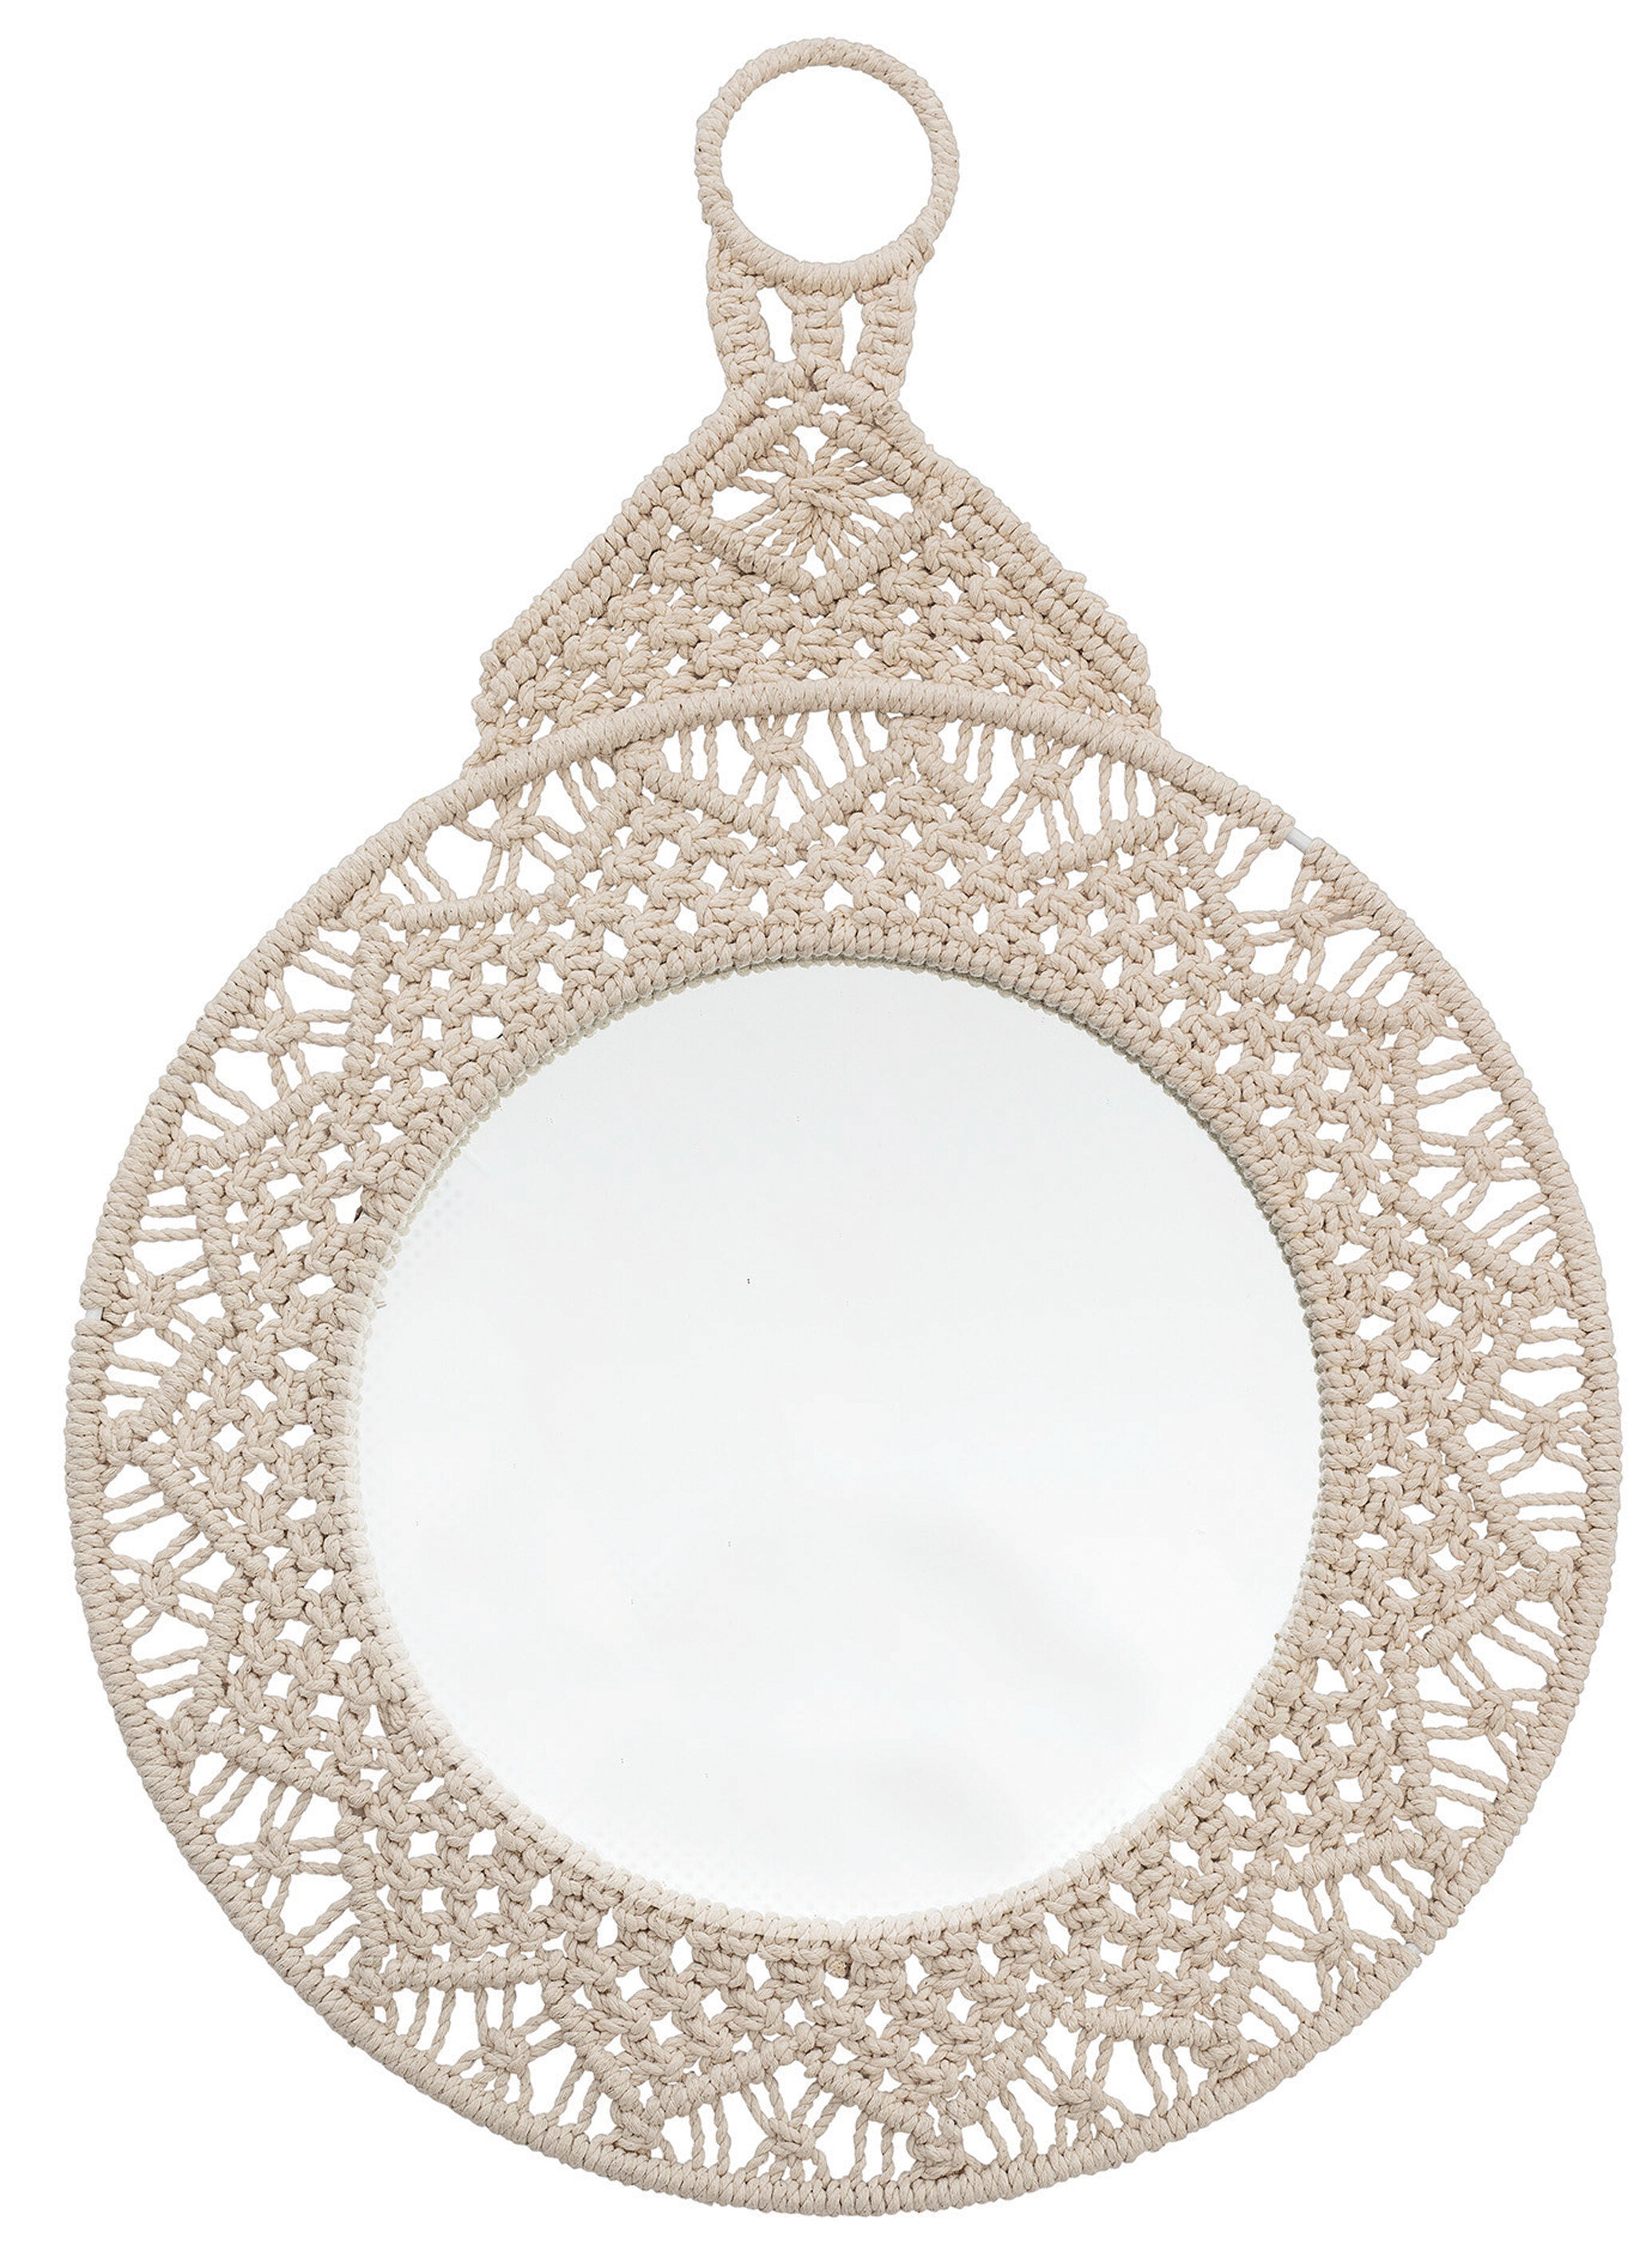 Crewellwalk Eclectic Accent Mirror For Round Eclectic Accent Mirrors (View 9 of 30)